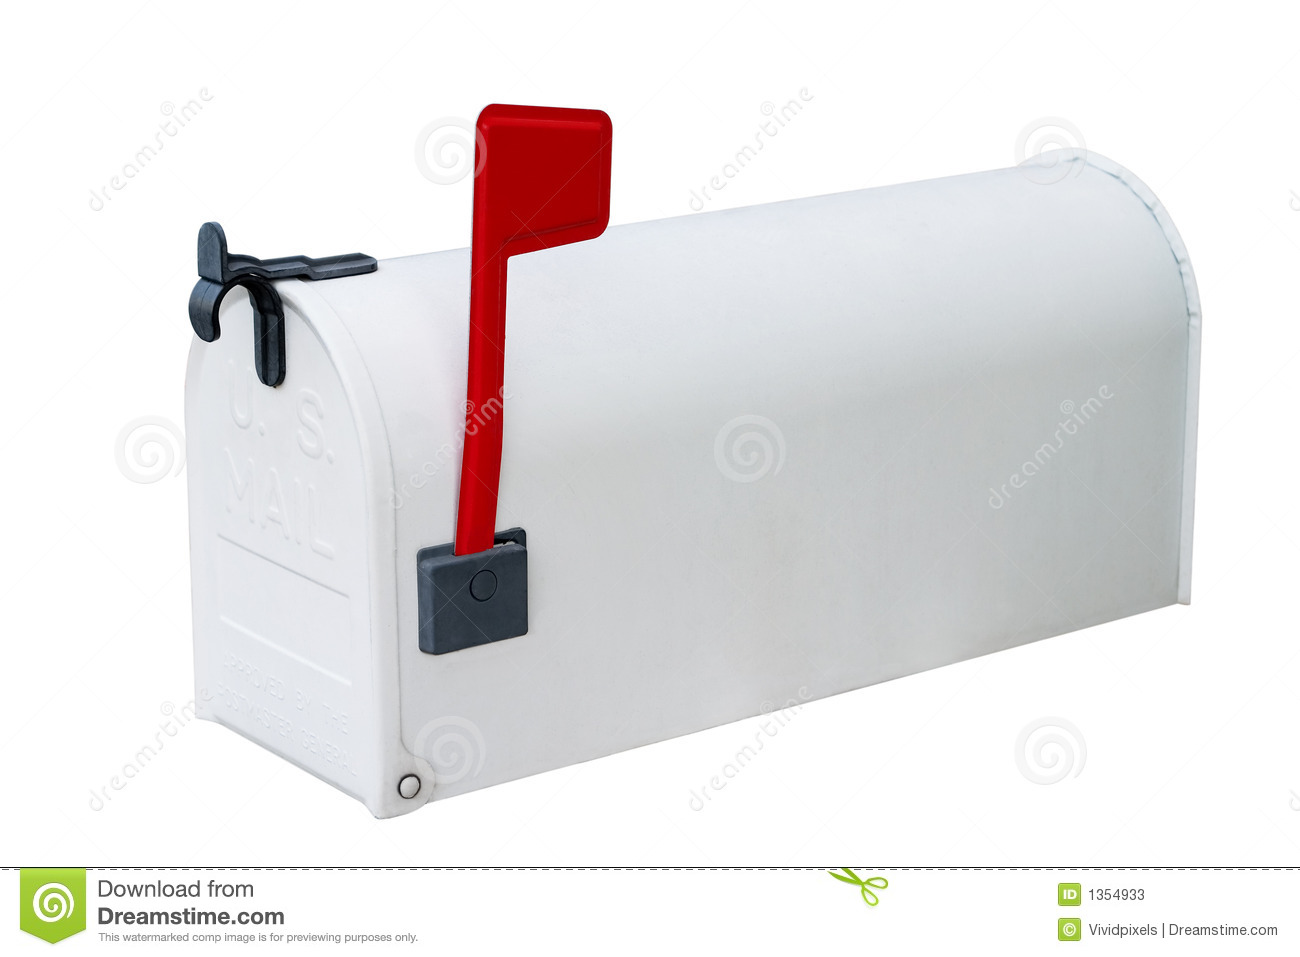 Pedestal Locking All In One Black furthermore 1888 as well Gibraltar Replacement Flag Kit Red as well Q Sealing Around A Vinyl Siding Mounting Block likewise More Muscles. on mailbox flag replacement